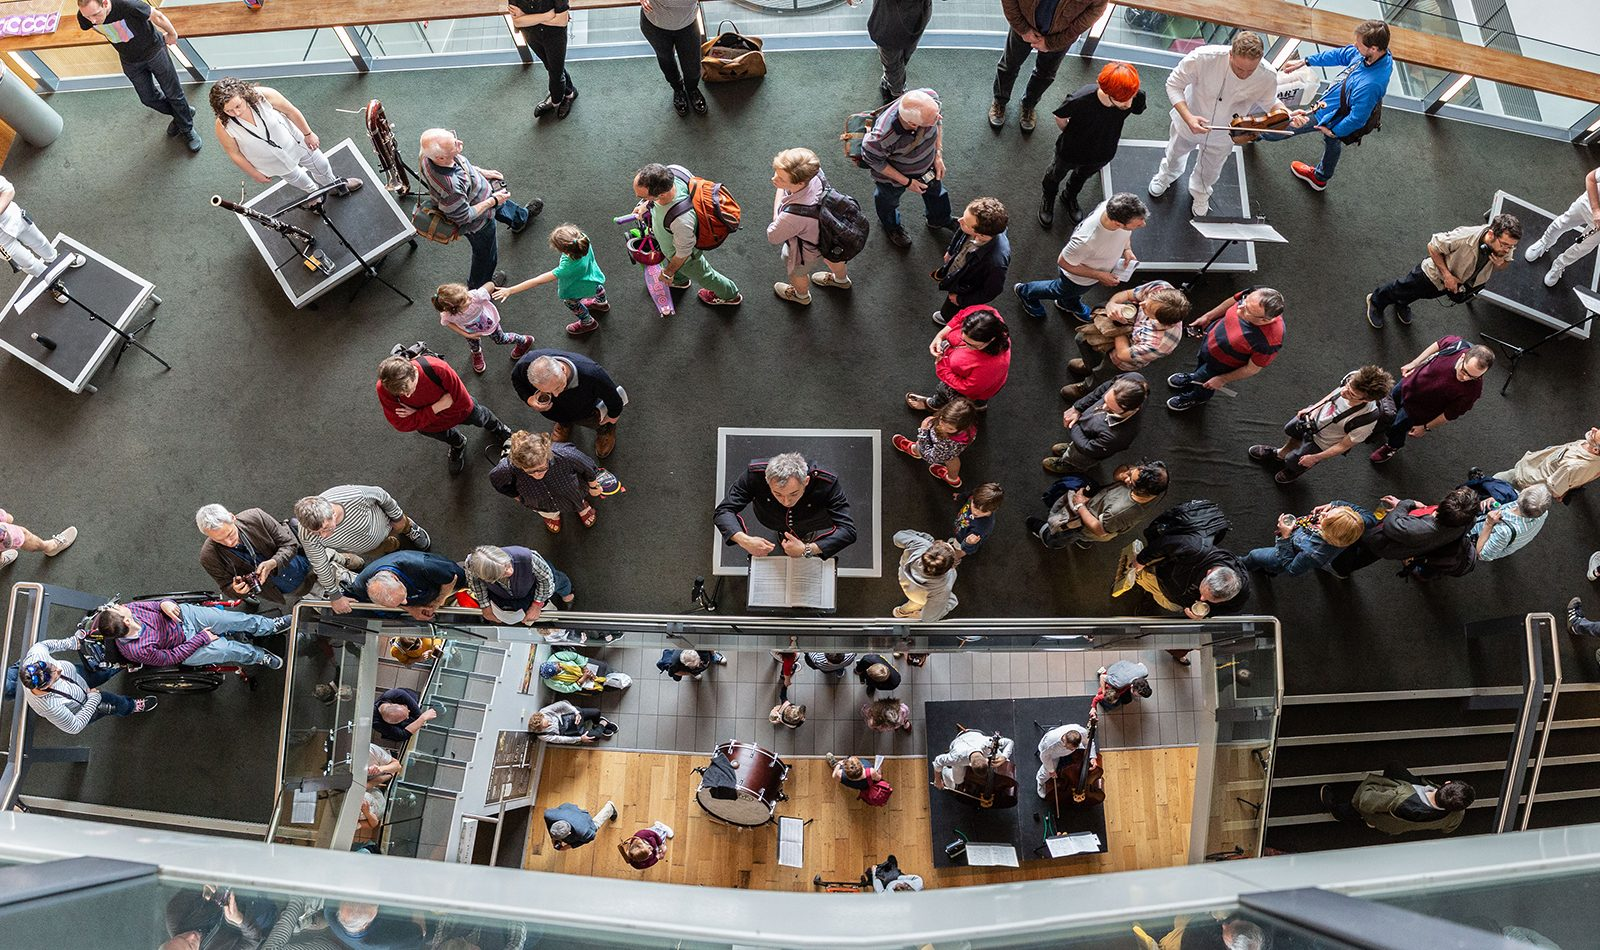 Taken from above, the top floor of the foyer at Colston Hall, looking down on Charles Hazlewood conducting musicisn spread out amongs the lower levels. Audienes wander between the musicians. Largle windo lights the scene from behind.